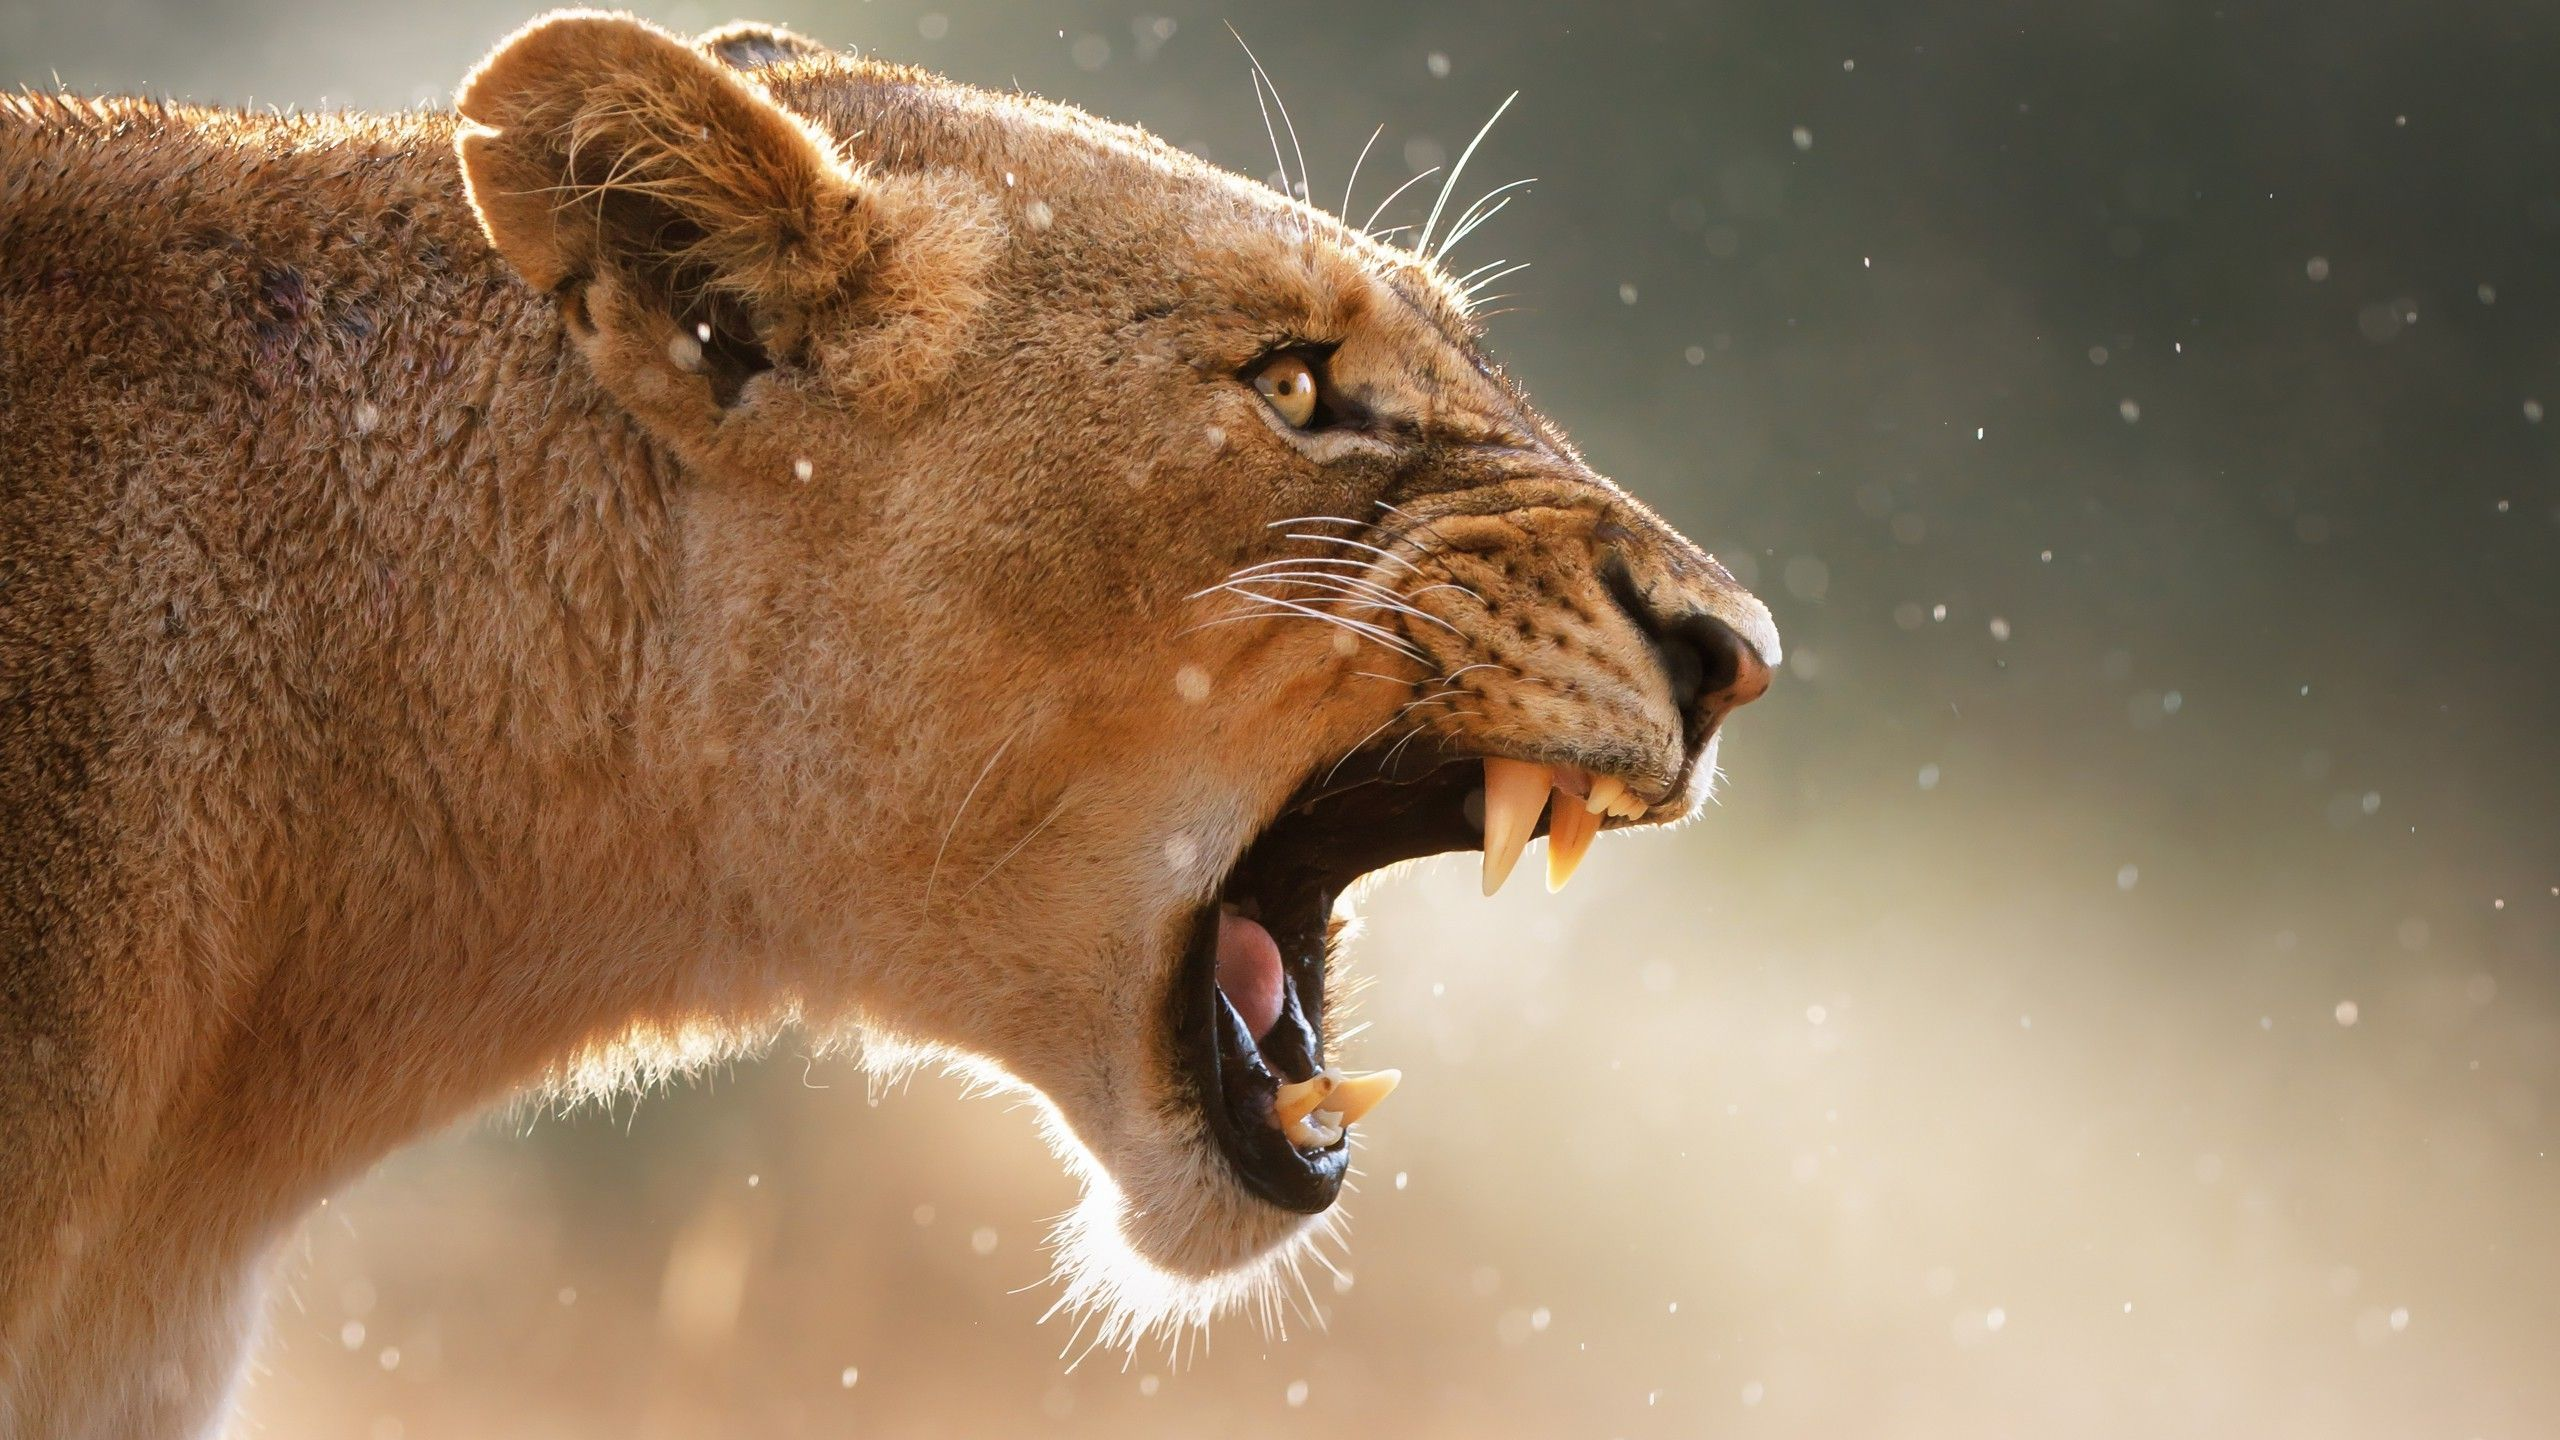 39829035-lioness-backgrounds-wallpapers